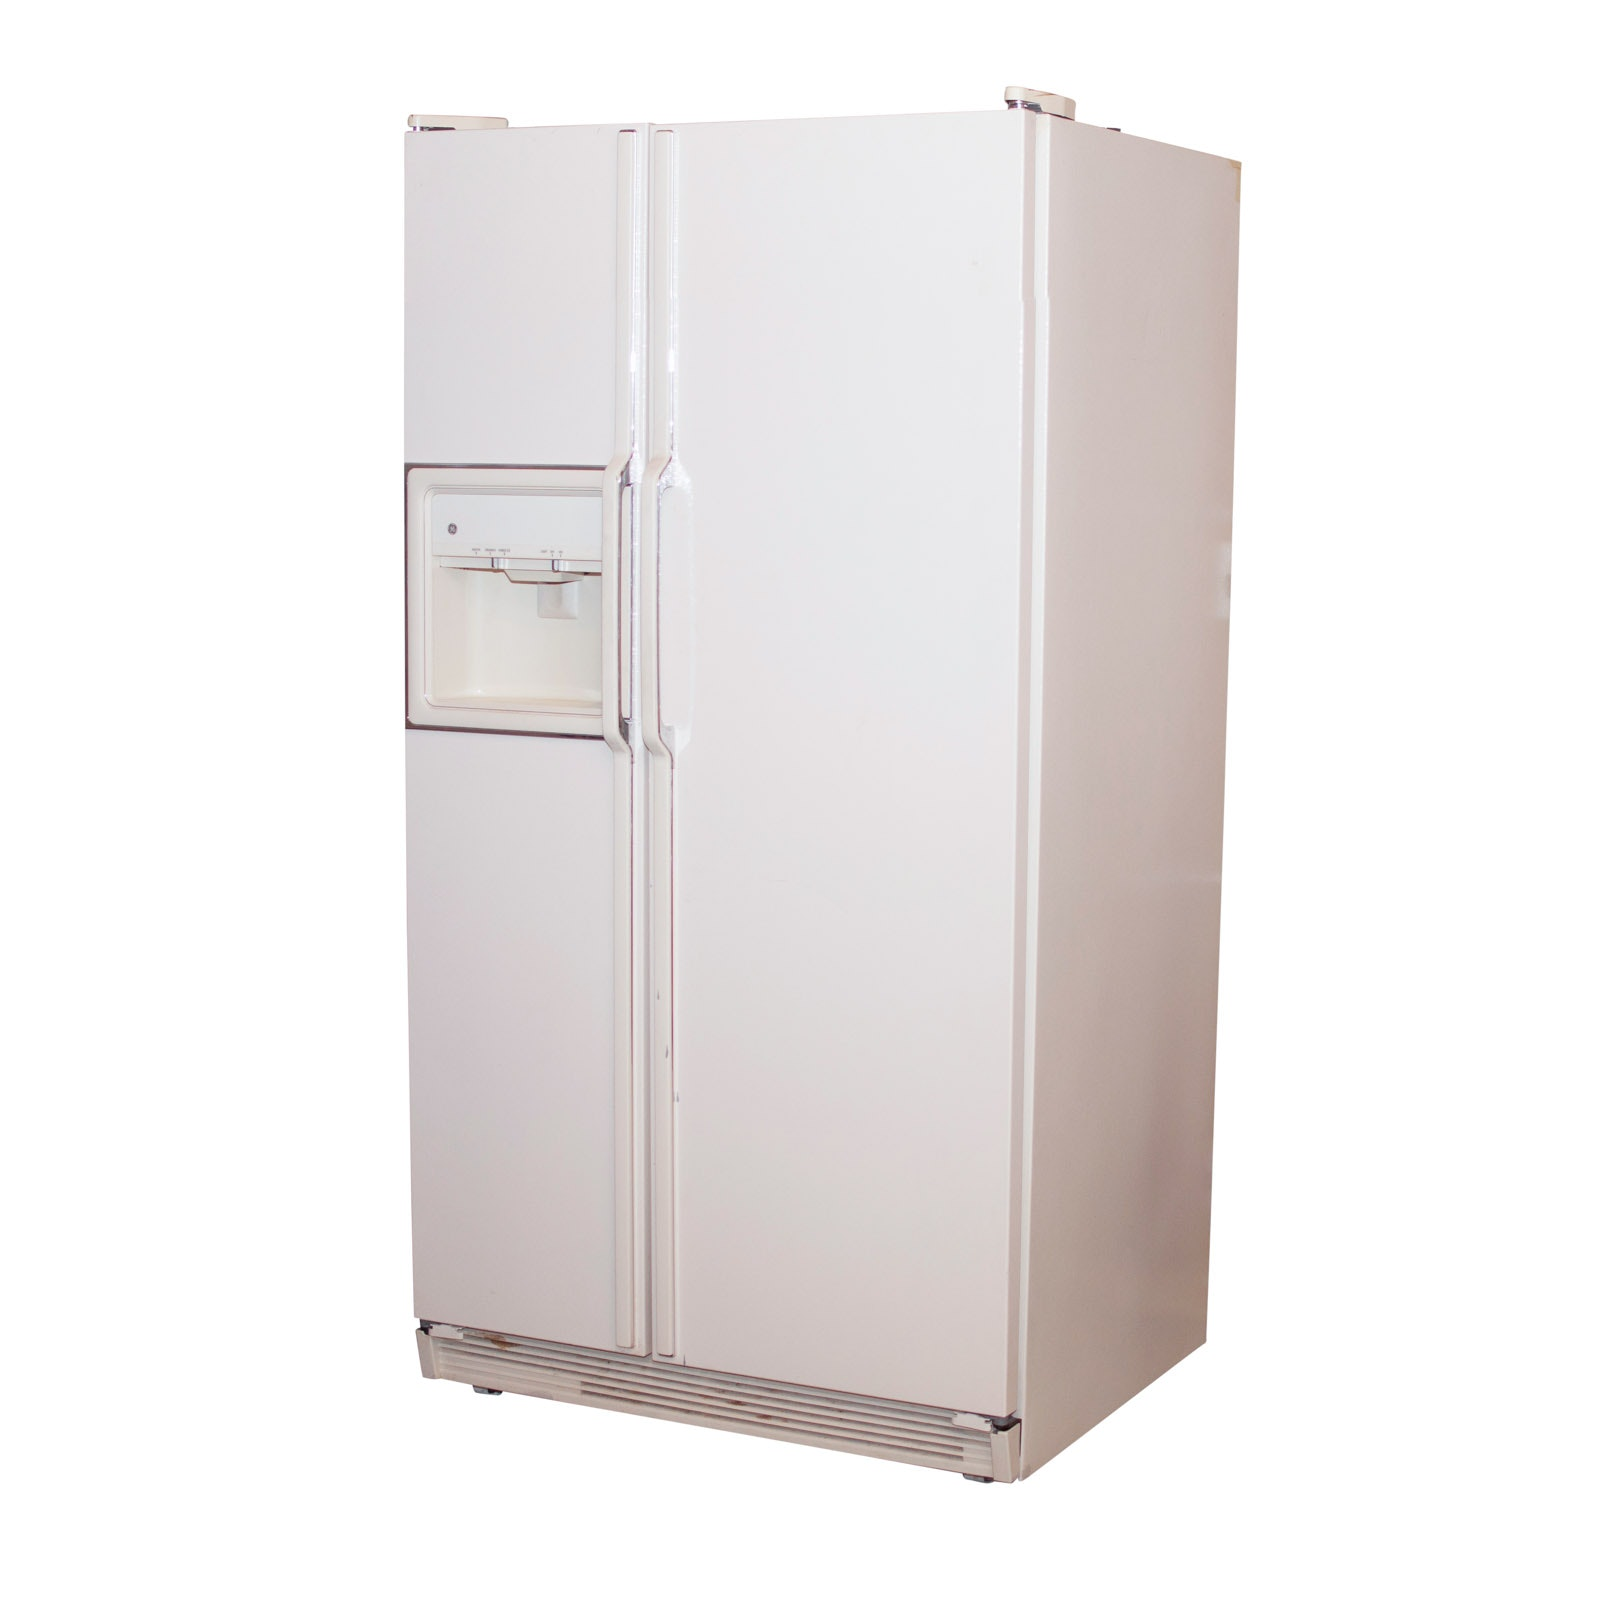 GE No Frost Refrigerator and Freezer